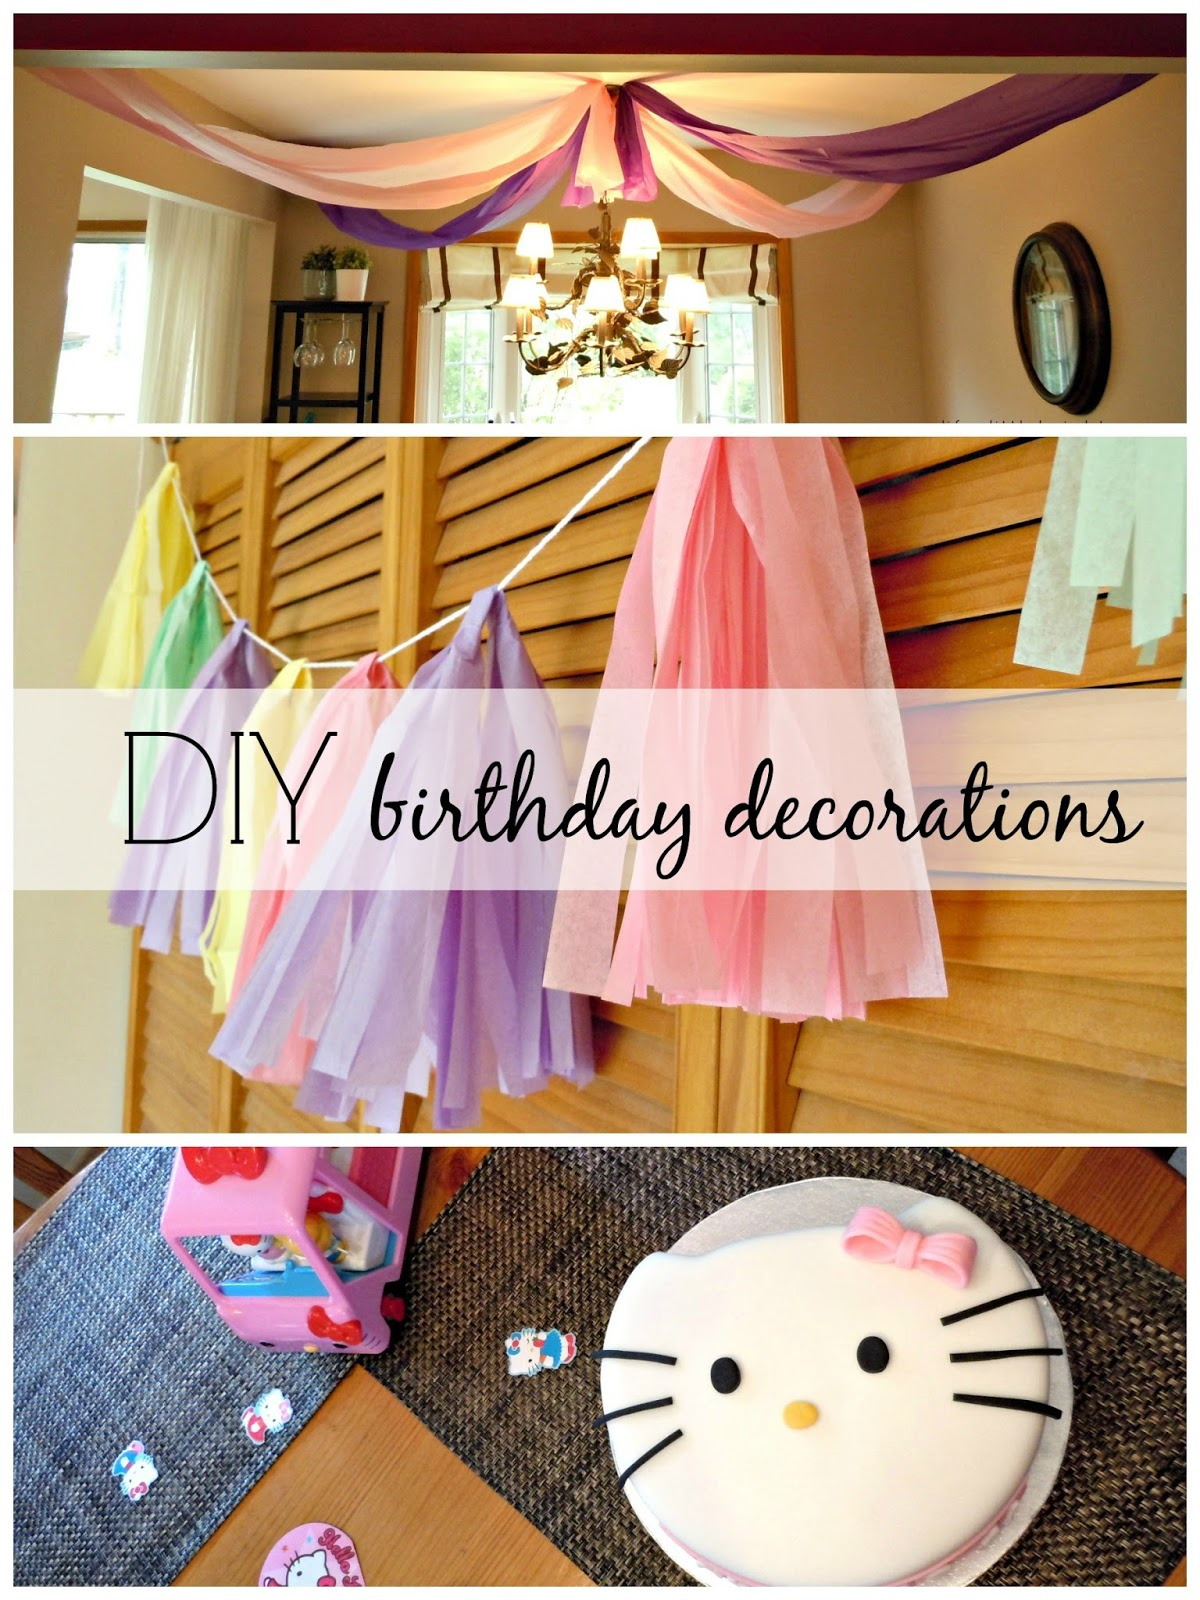 Birthday party diy decorations life a little brighter for Diy birthday party decorations for adults